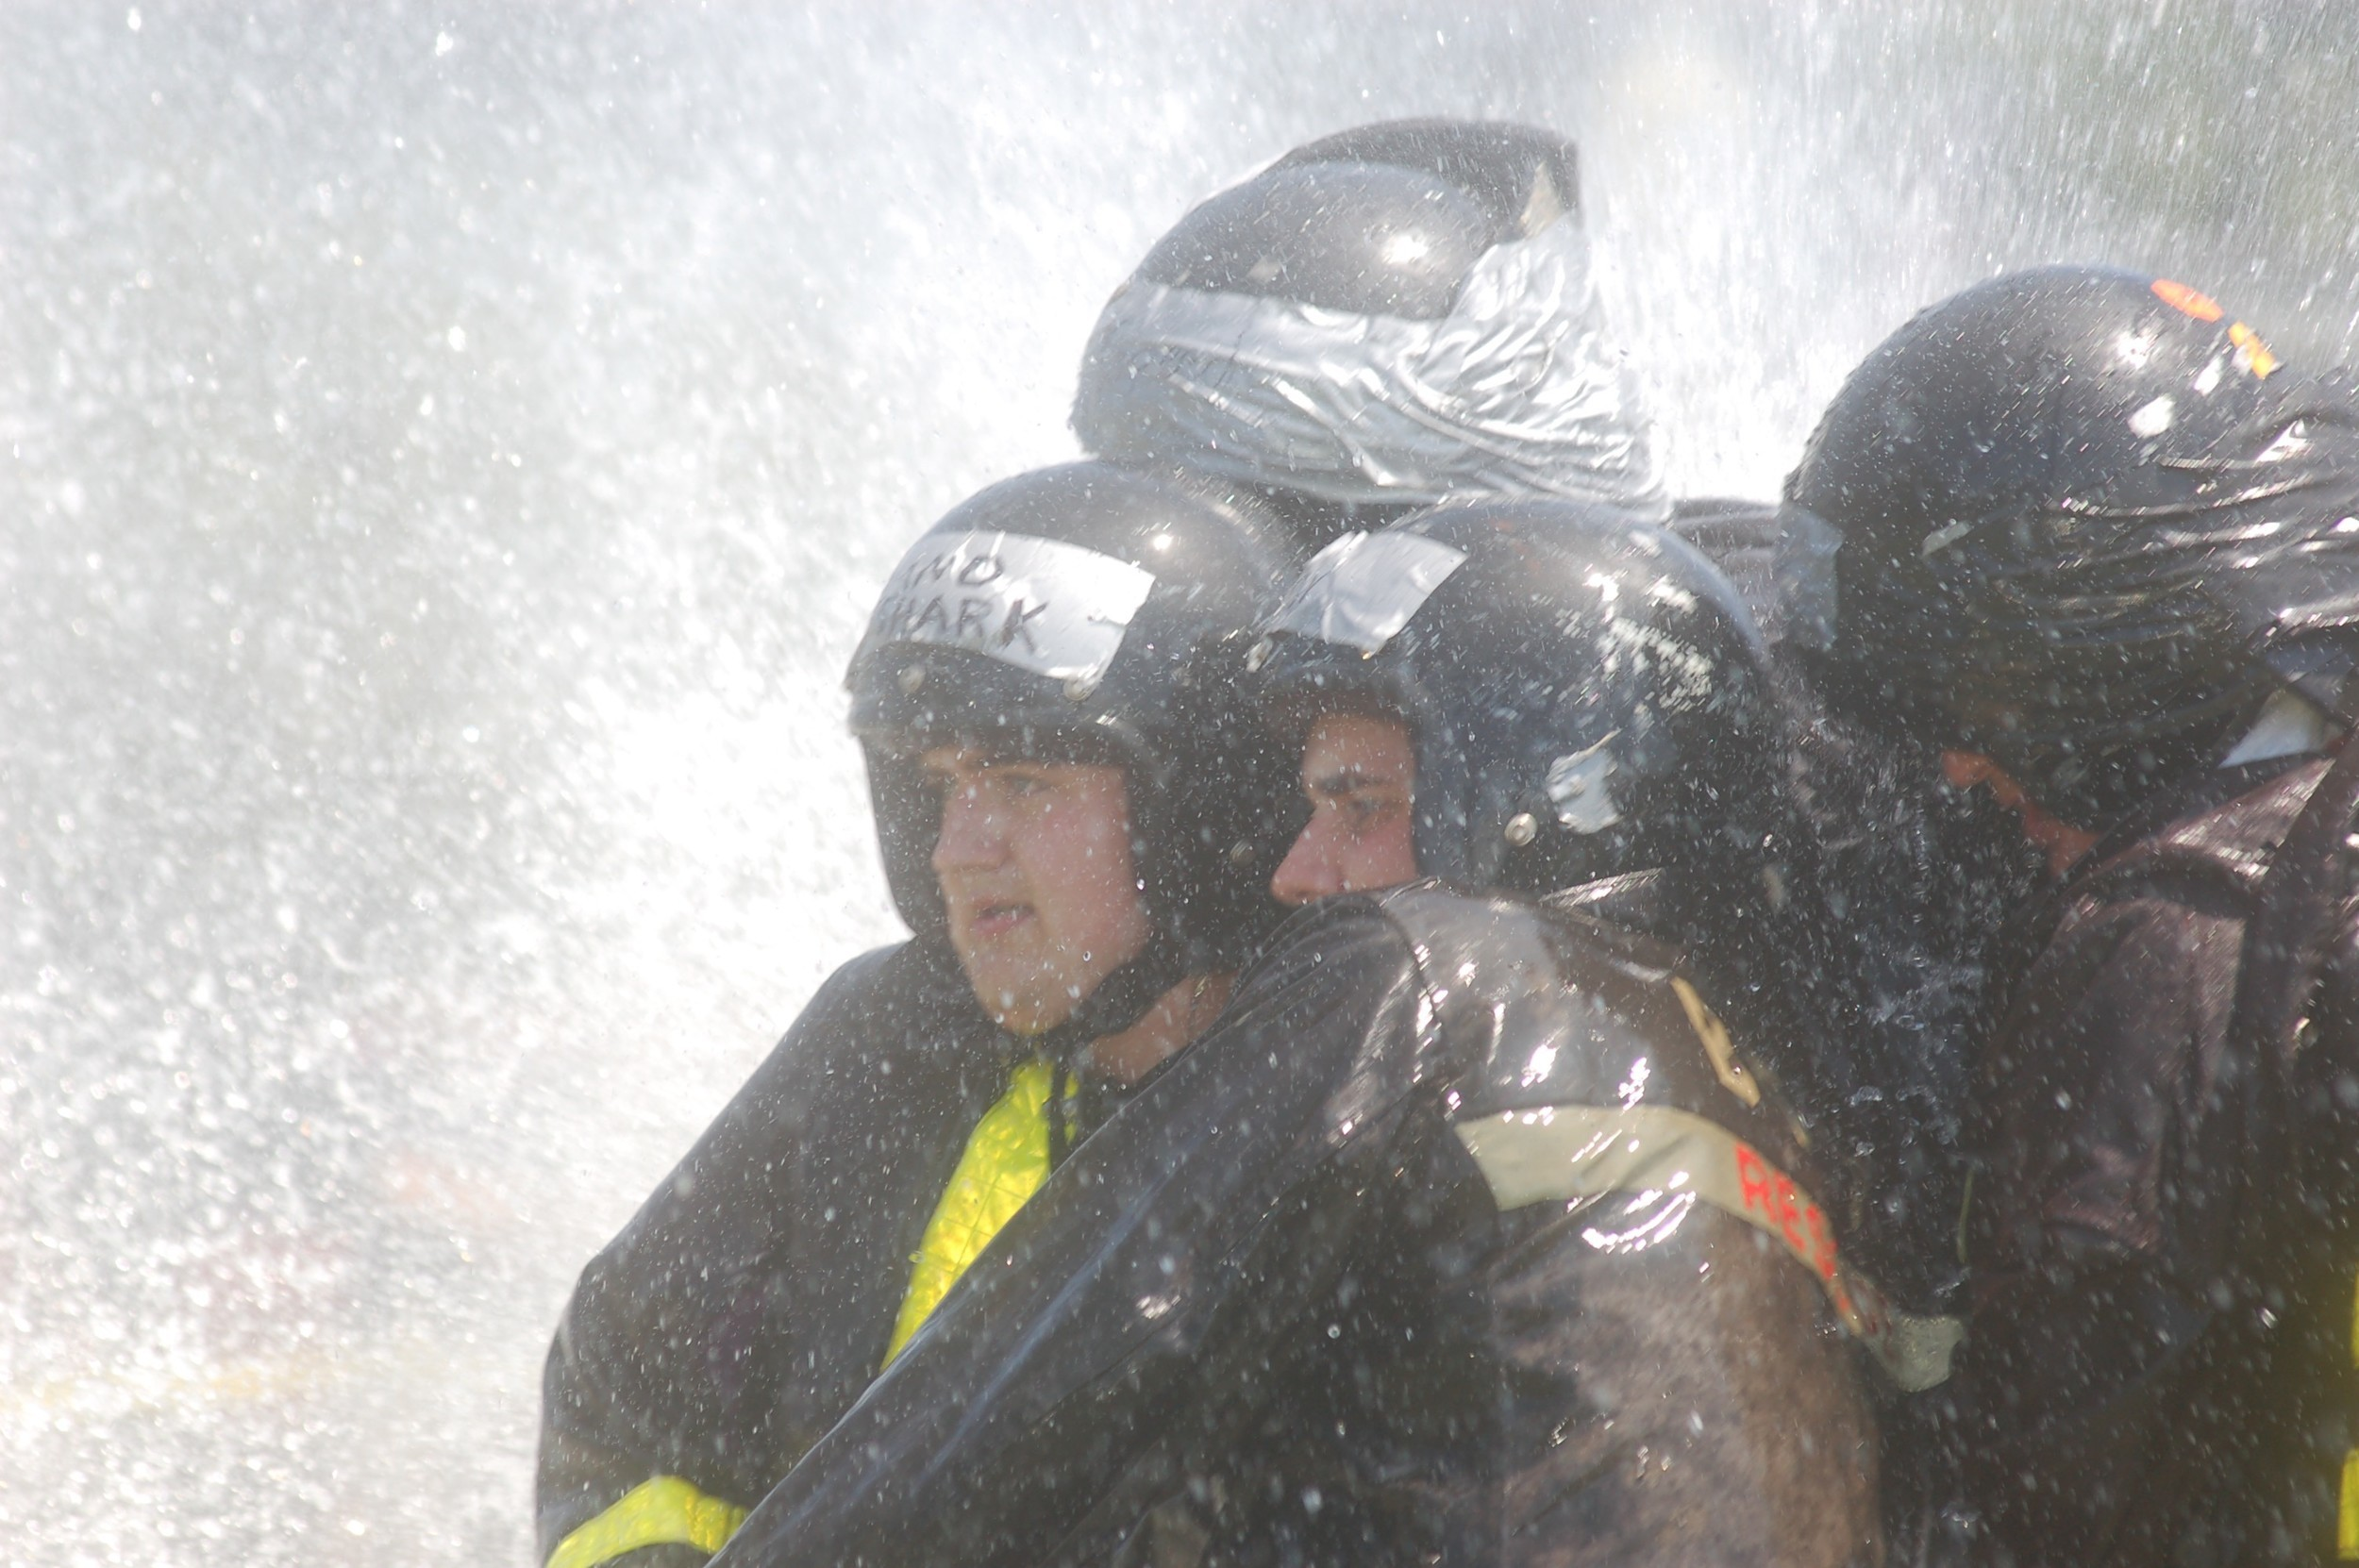 Bristol firefighters hold their stream stead while getting pummeled by their opponent's fire hose during the Water Battle at Independence Park Sunday.